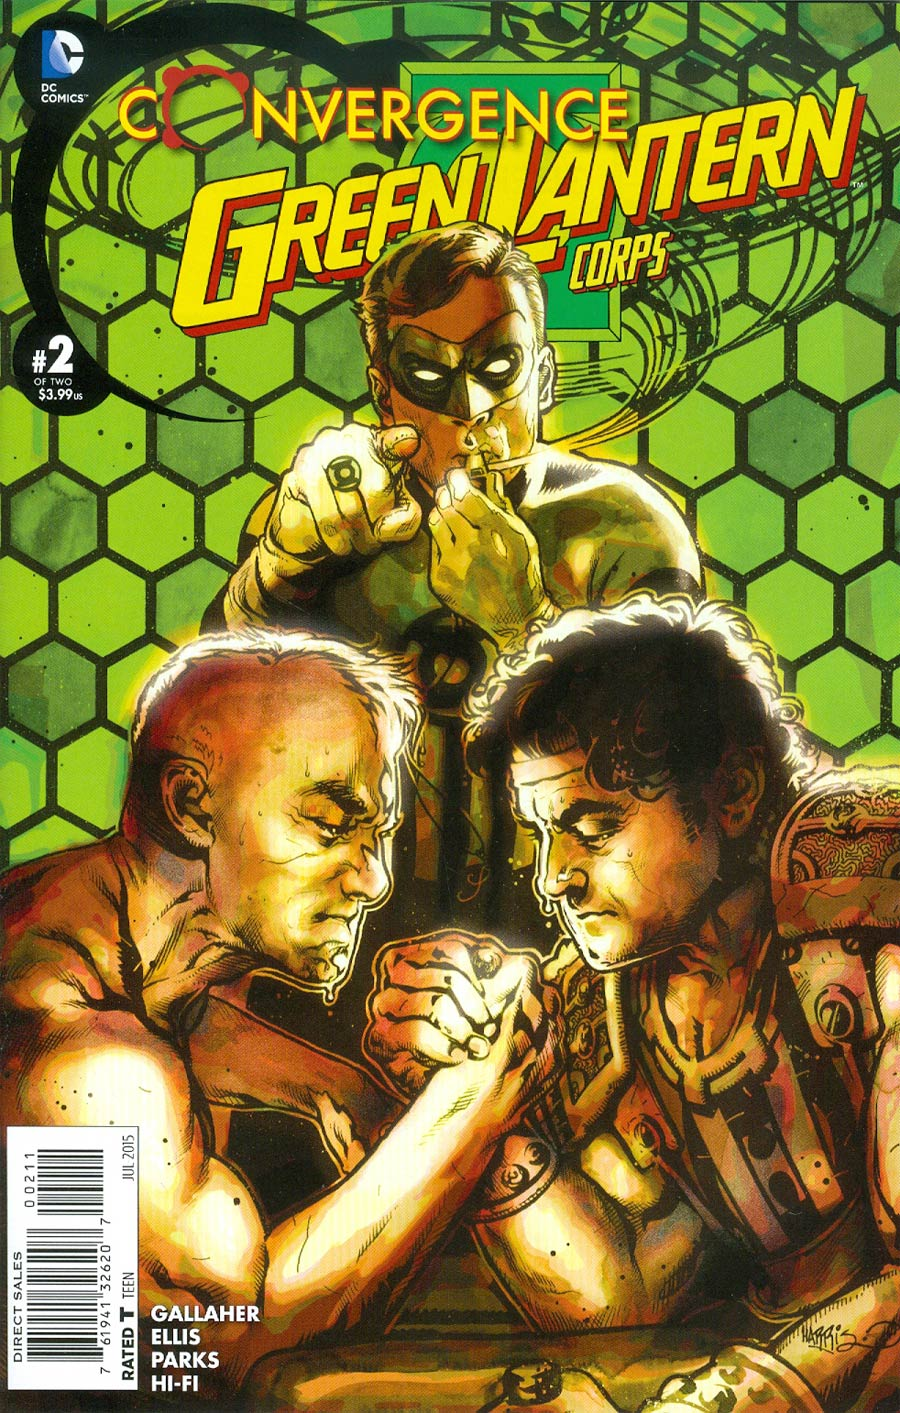 Convergence Green Lantern Corps #2 Cover A Regular Tony Harris Cover